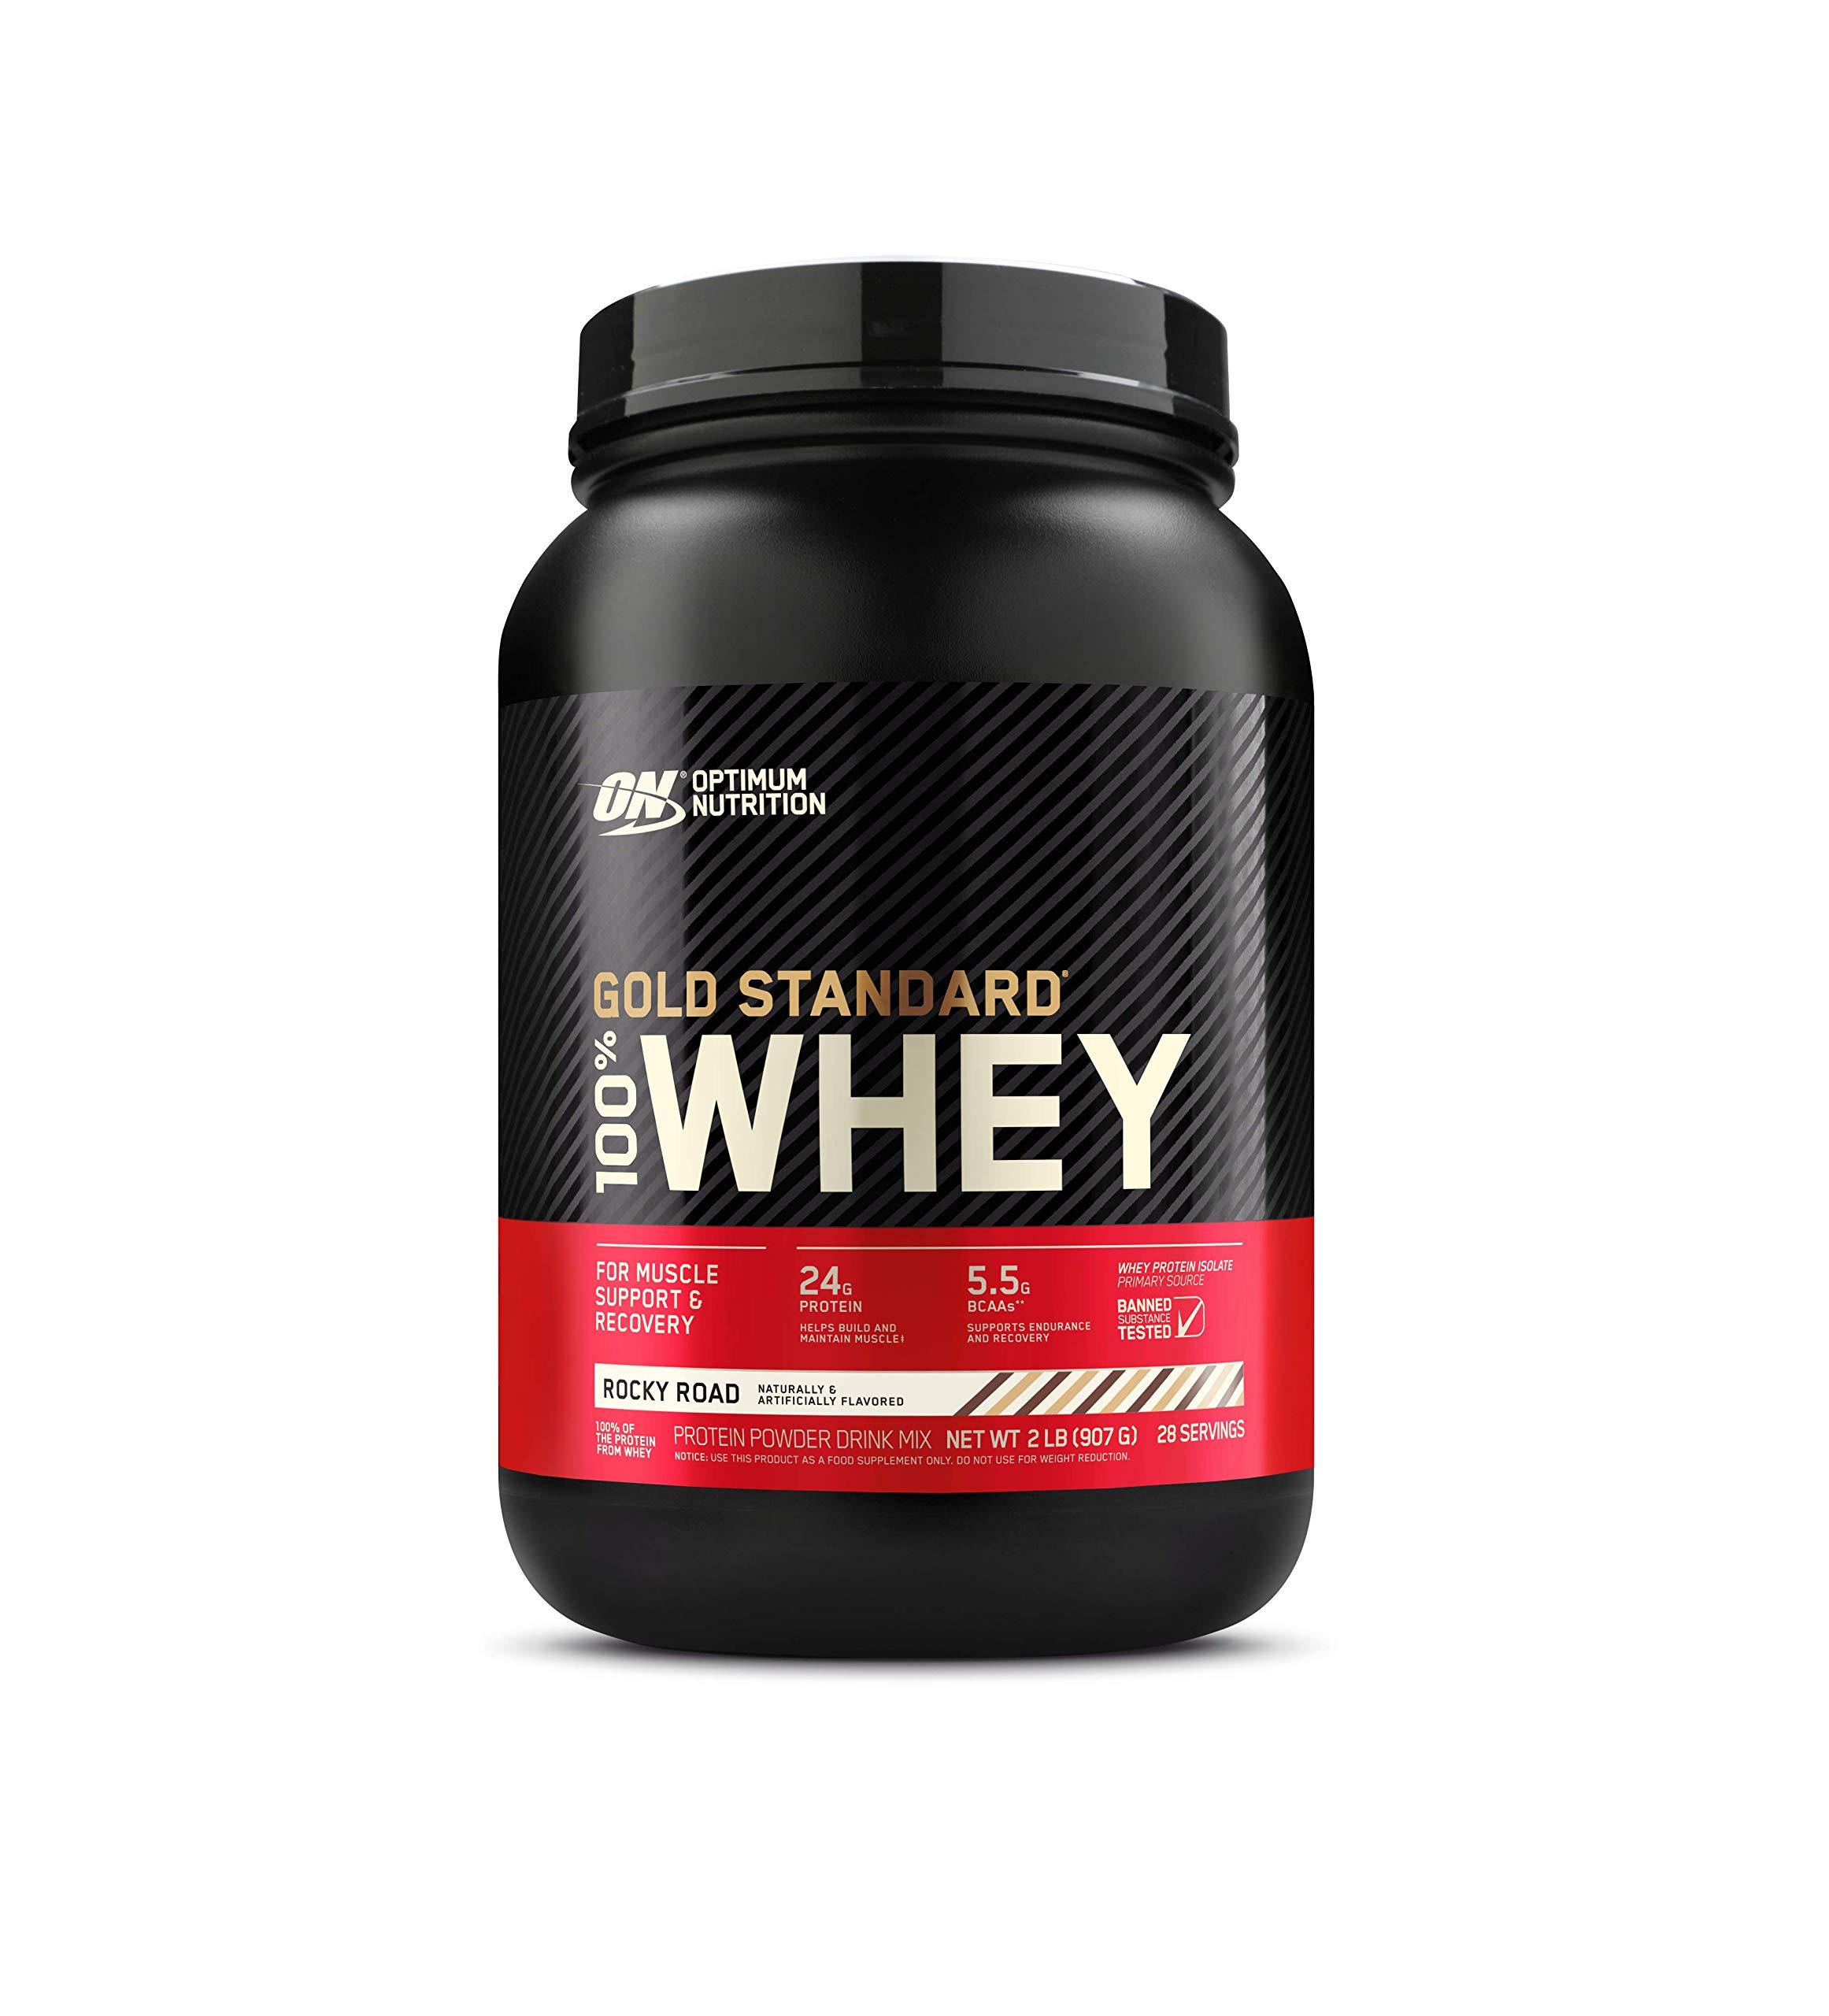 Optimum Nutrition Gold Standard 100% Whey Protein Powder, Rocky Road, 5 Pound (Packaging May Vary)